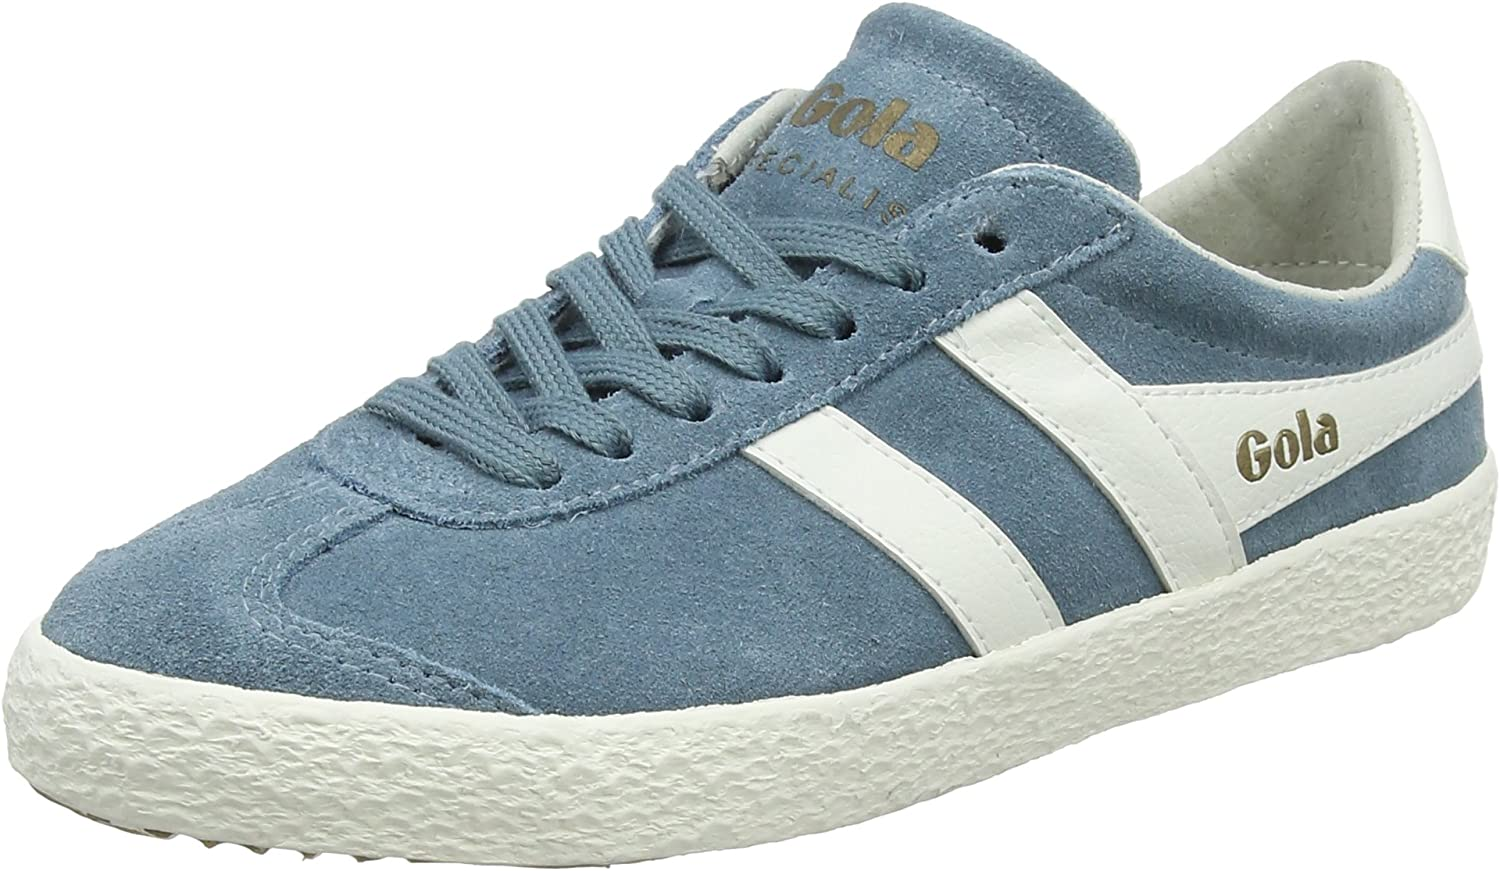 Gola Women's Specialist Indian Teal Off White Trainers, bluee Ea, 8 UK 41 EU